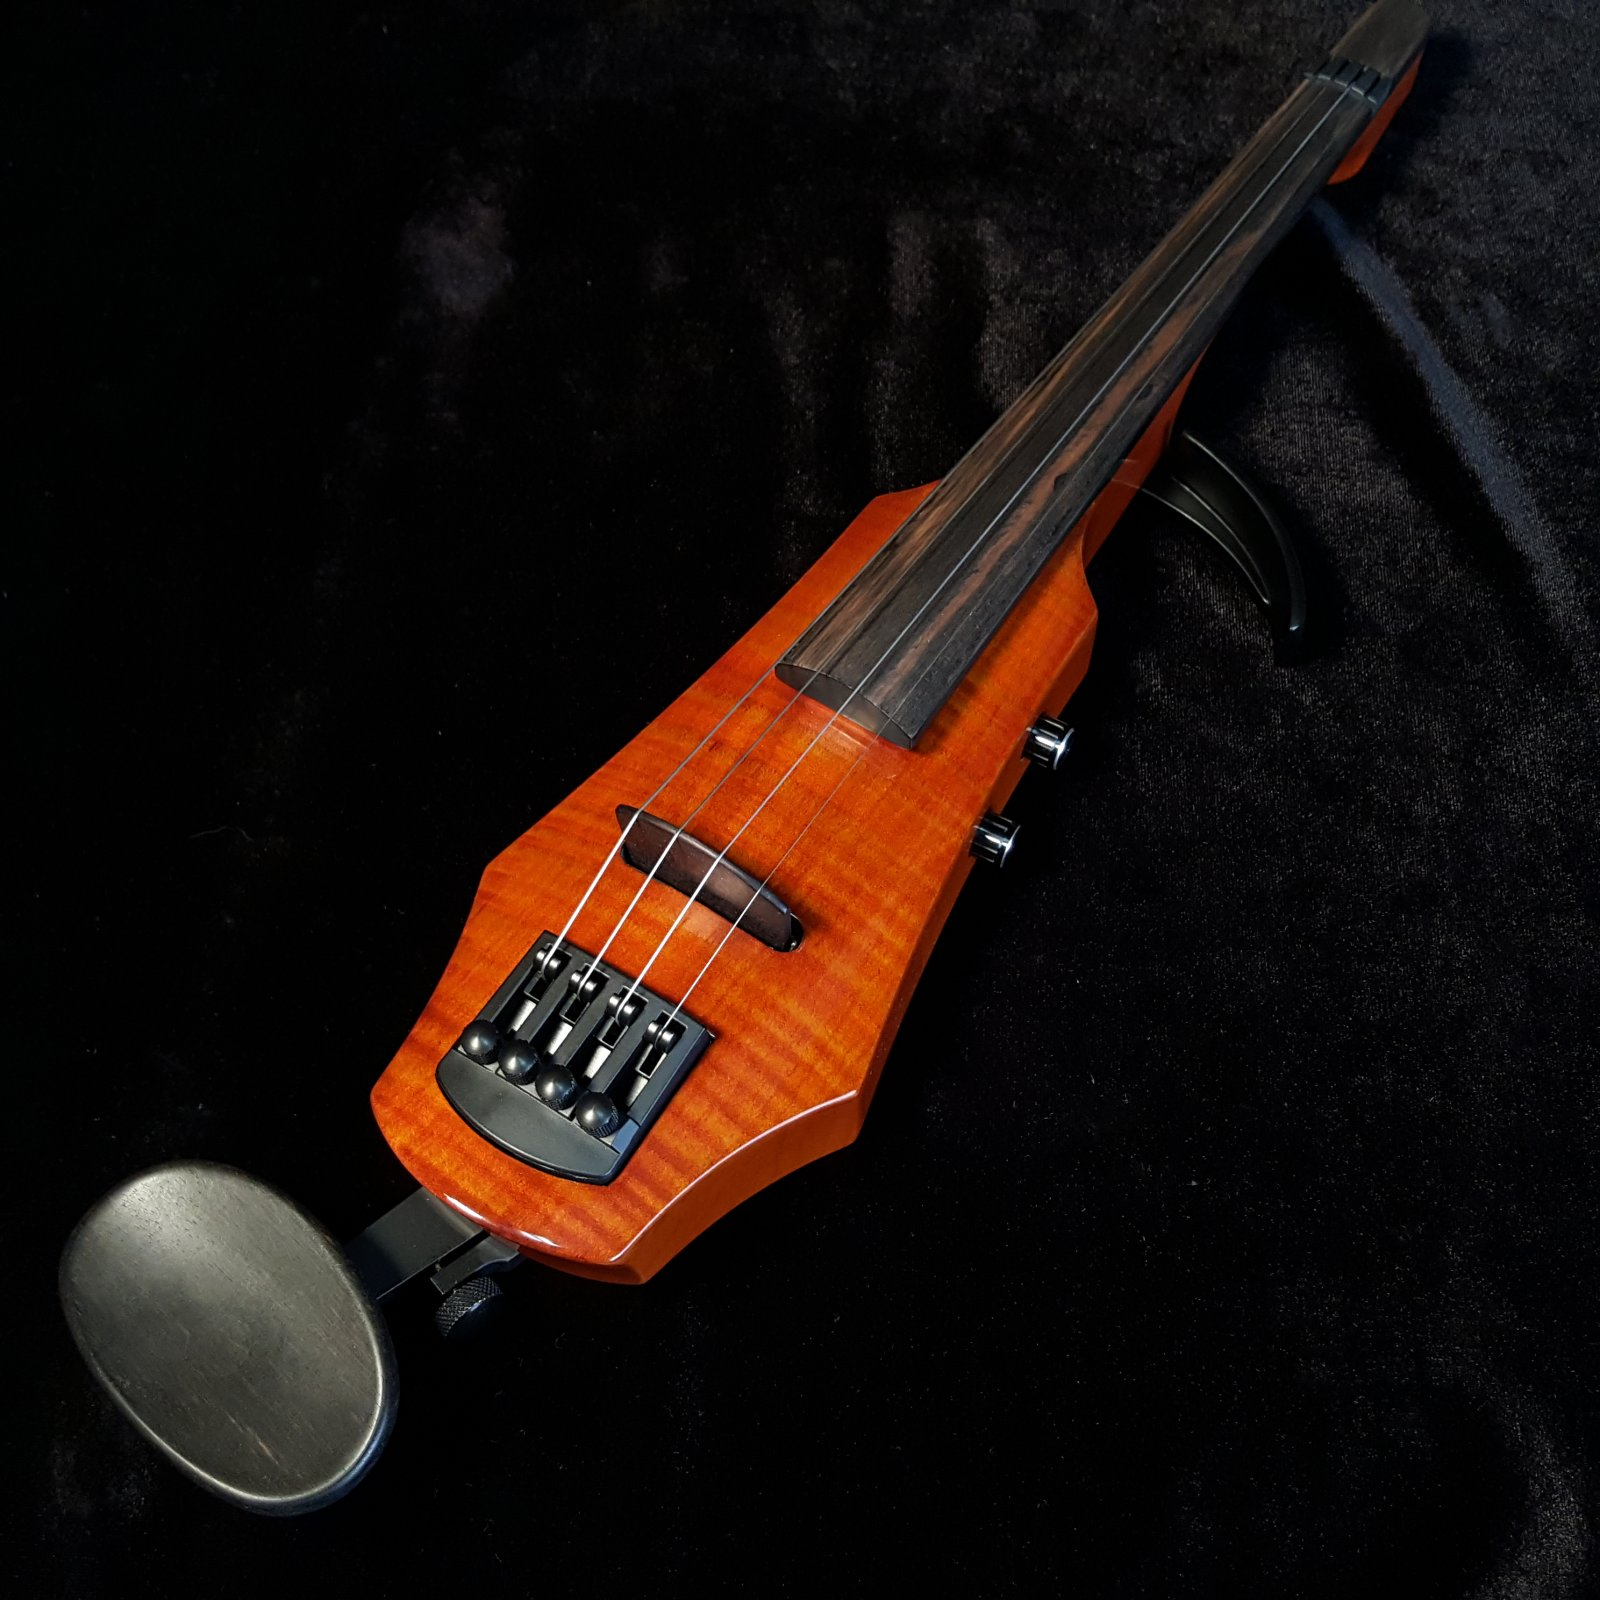 NS Design WAV4 Violin with case